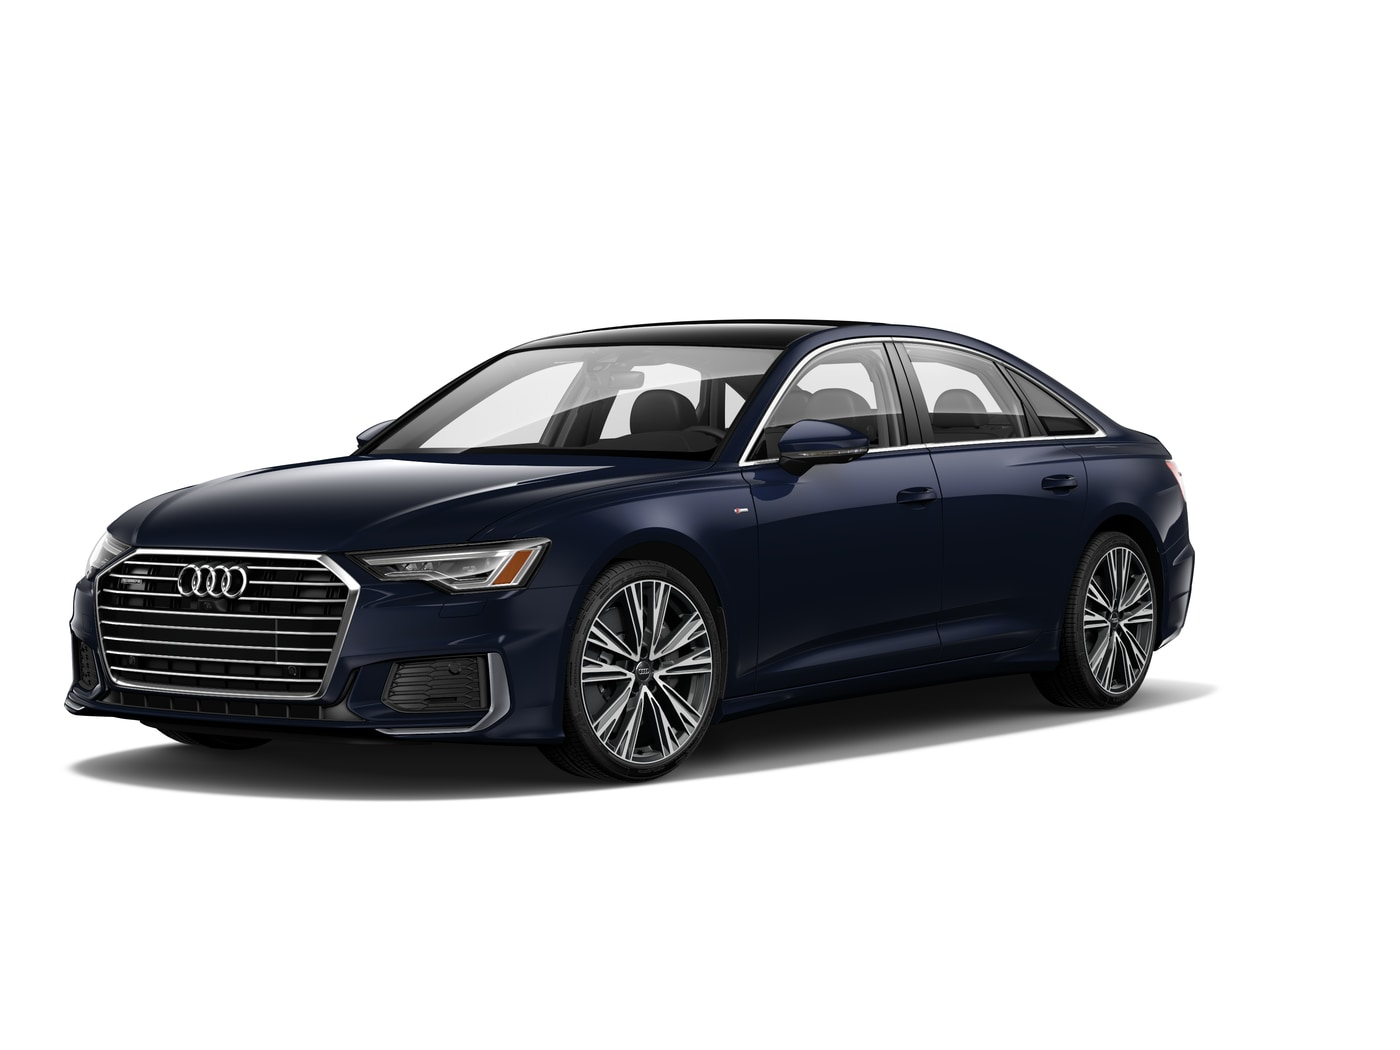 2019 Audi A6 vs. 2019 BMW 6-Series